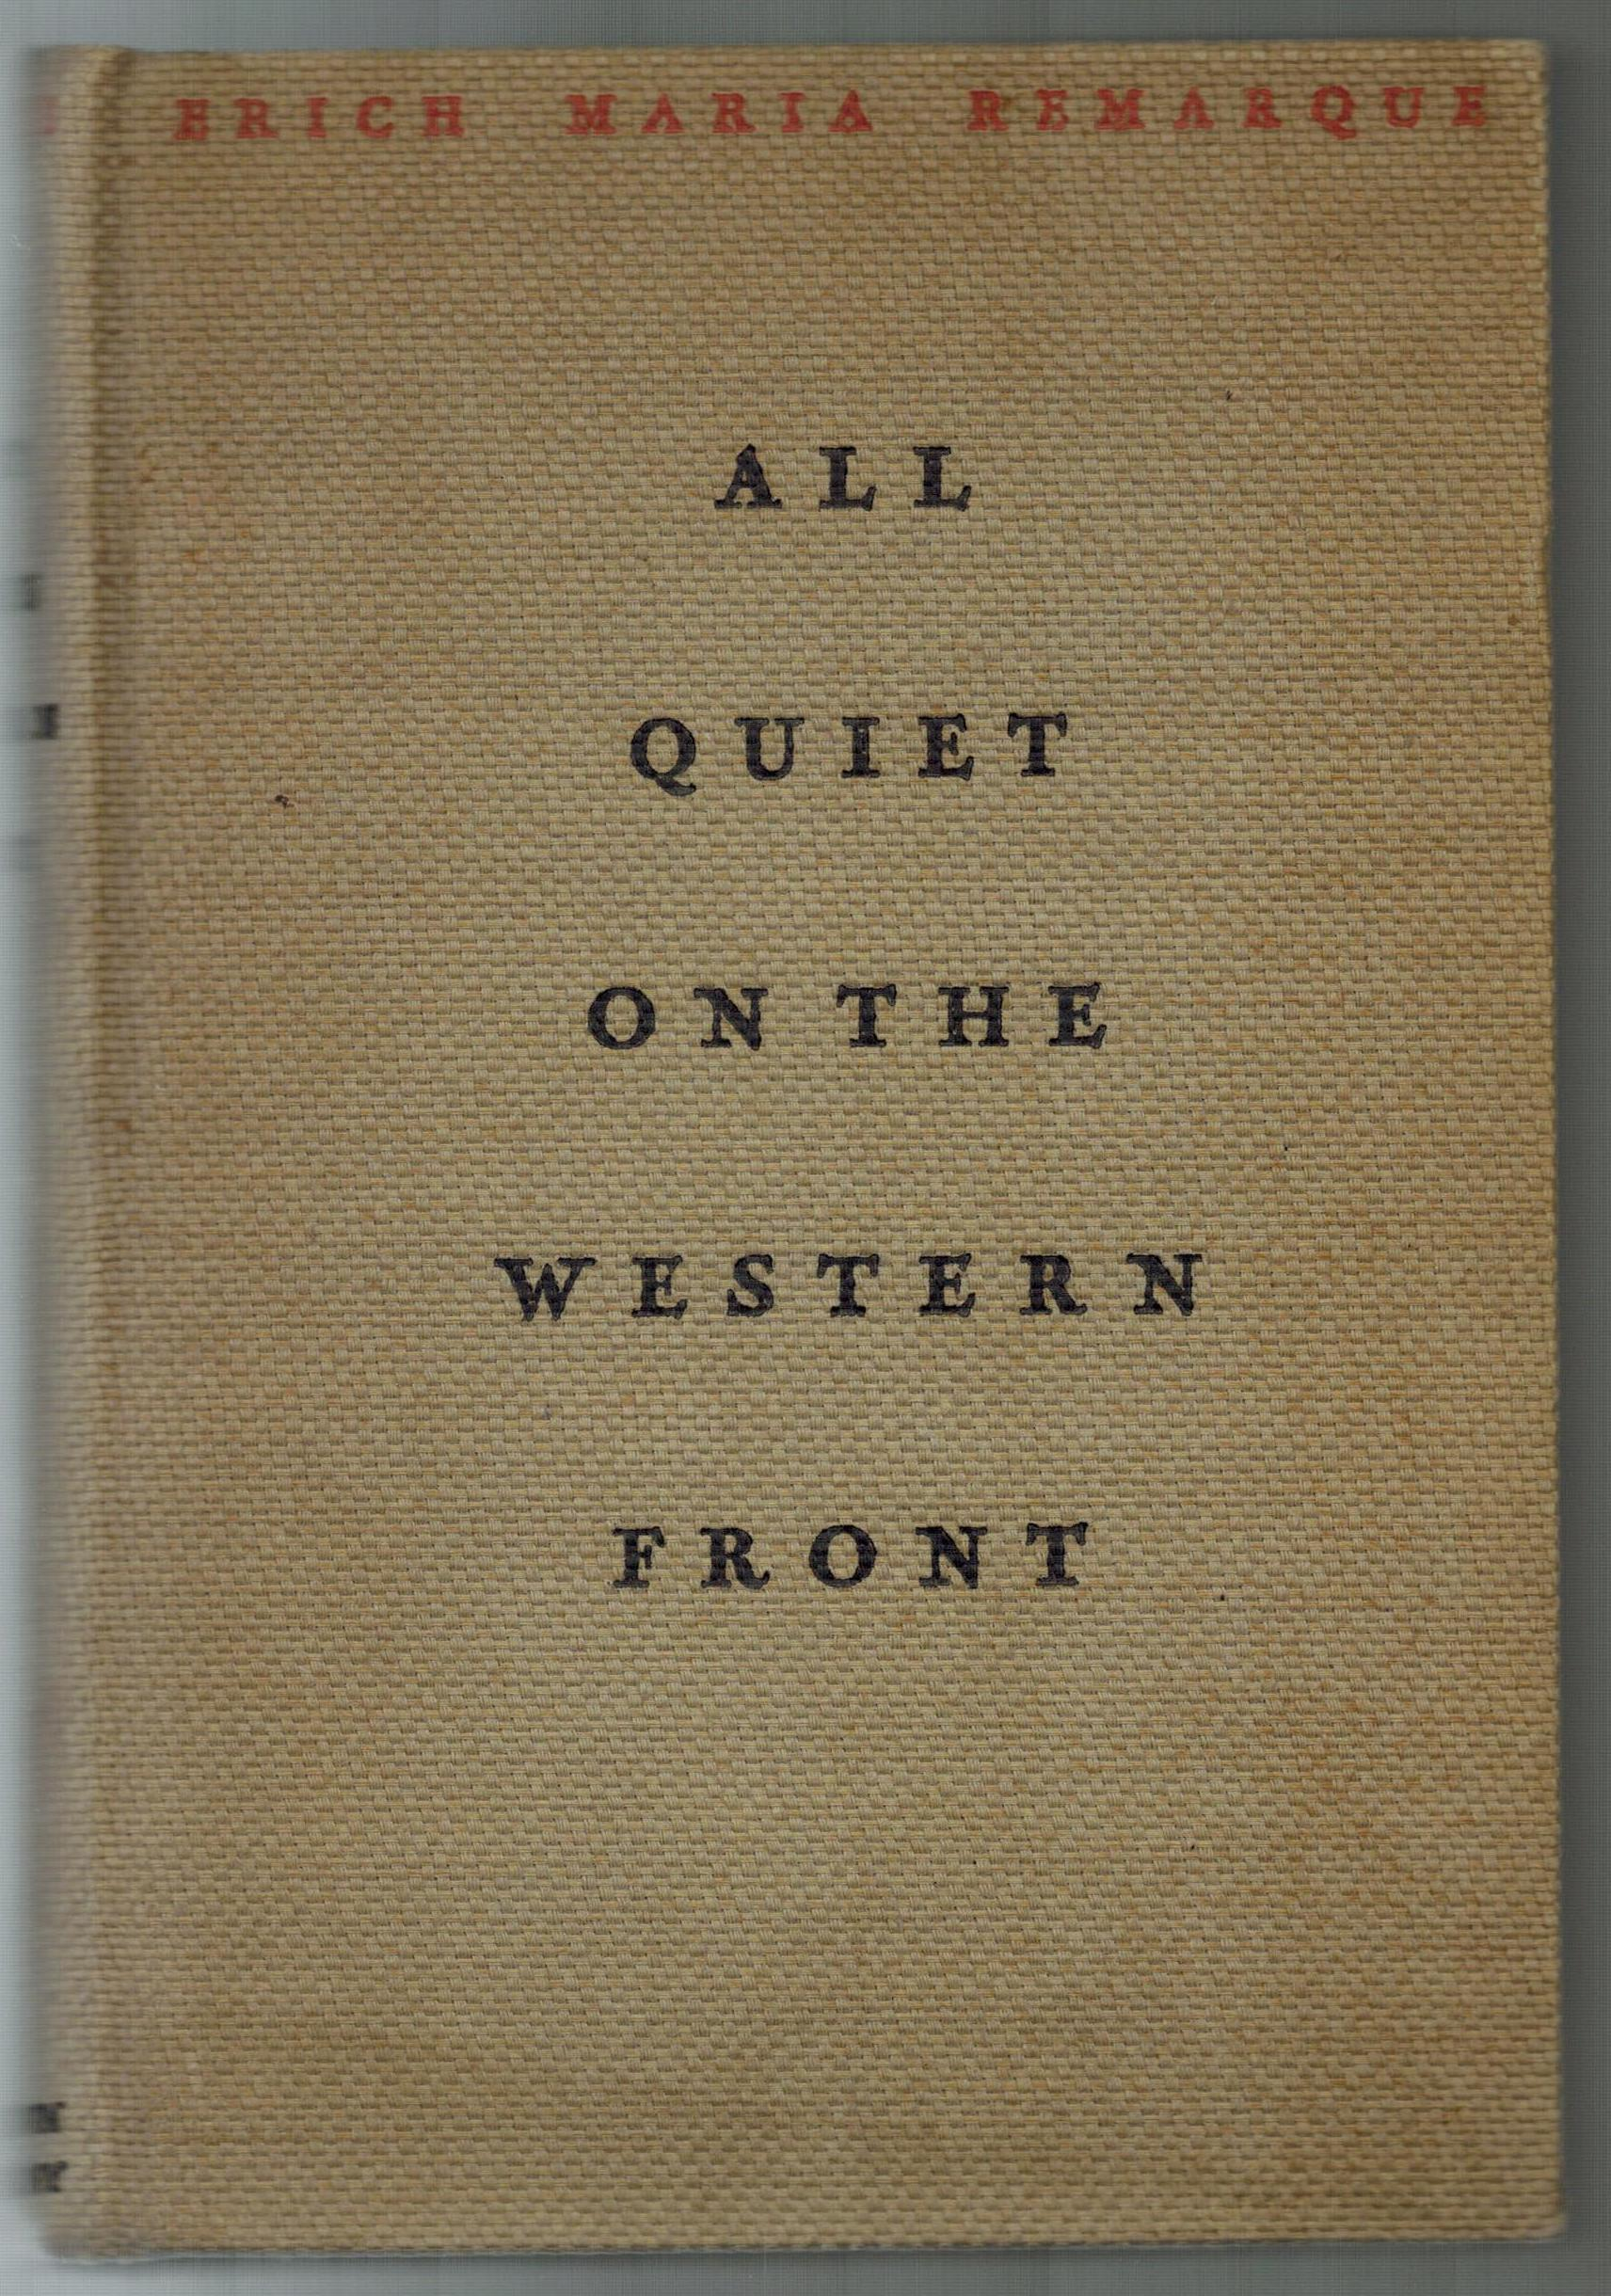 an analysis of all quiet on the western front a book by erich maria remarque Buy all quiet on the western front from dymocks online bookstore find latest  reader  front rating 0 write a review  books by the same author noapte  la  erich maria remarque, sarah wimperis, tony evans, erich maria remarque.